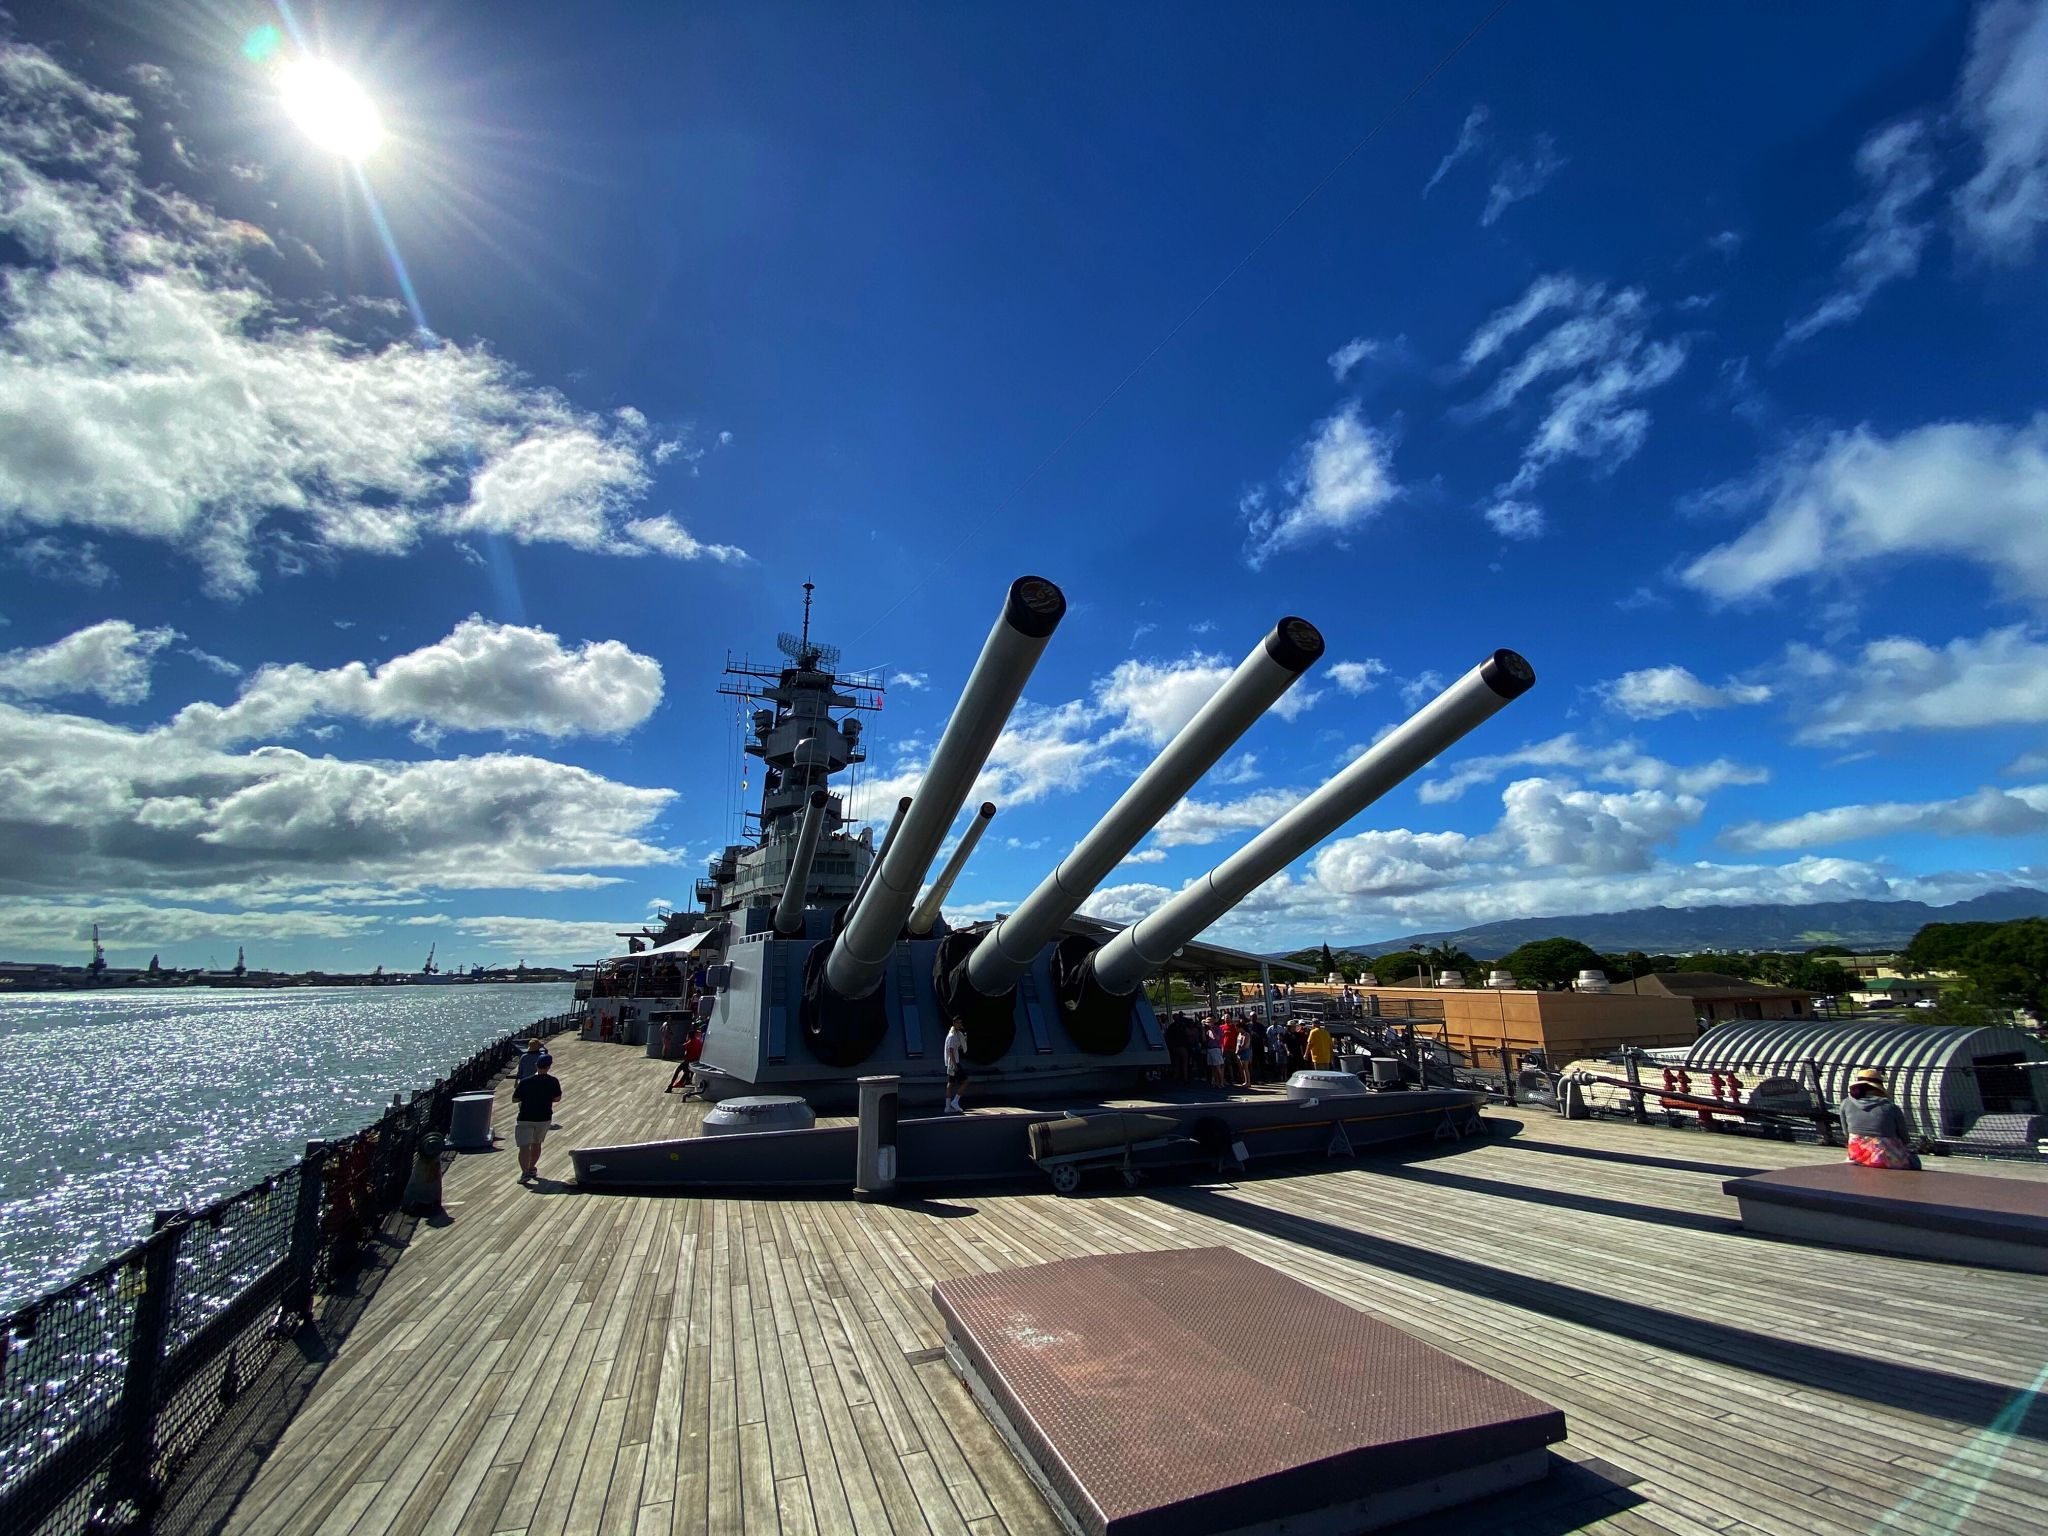 USS Missouri, USA